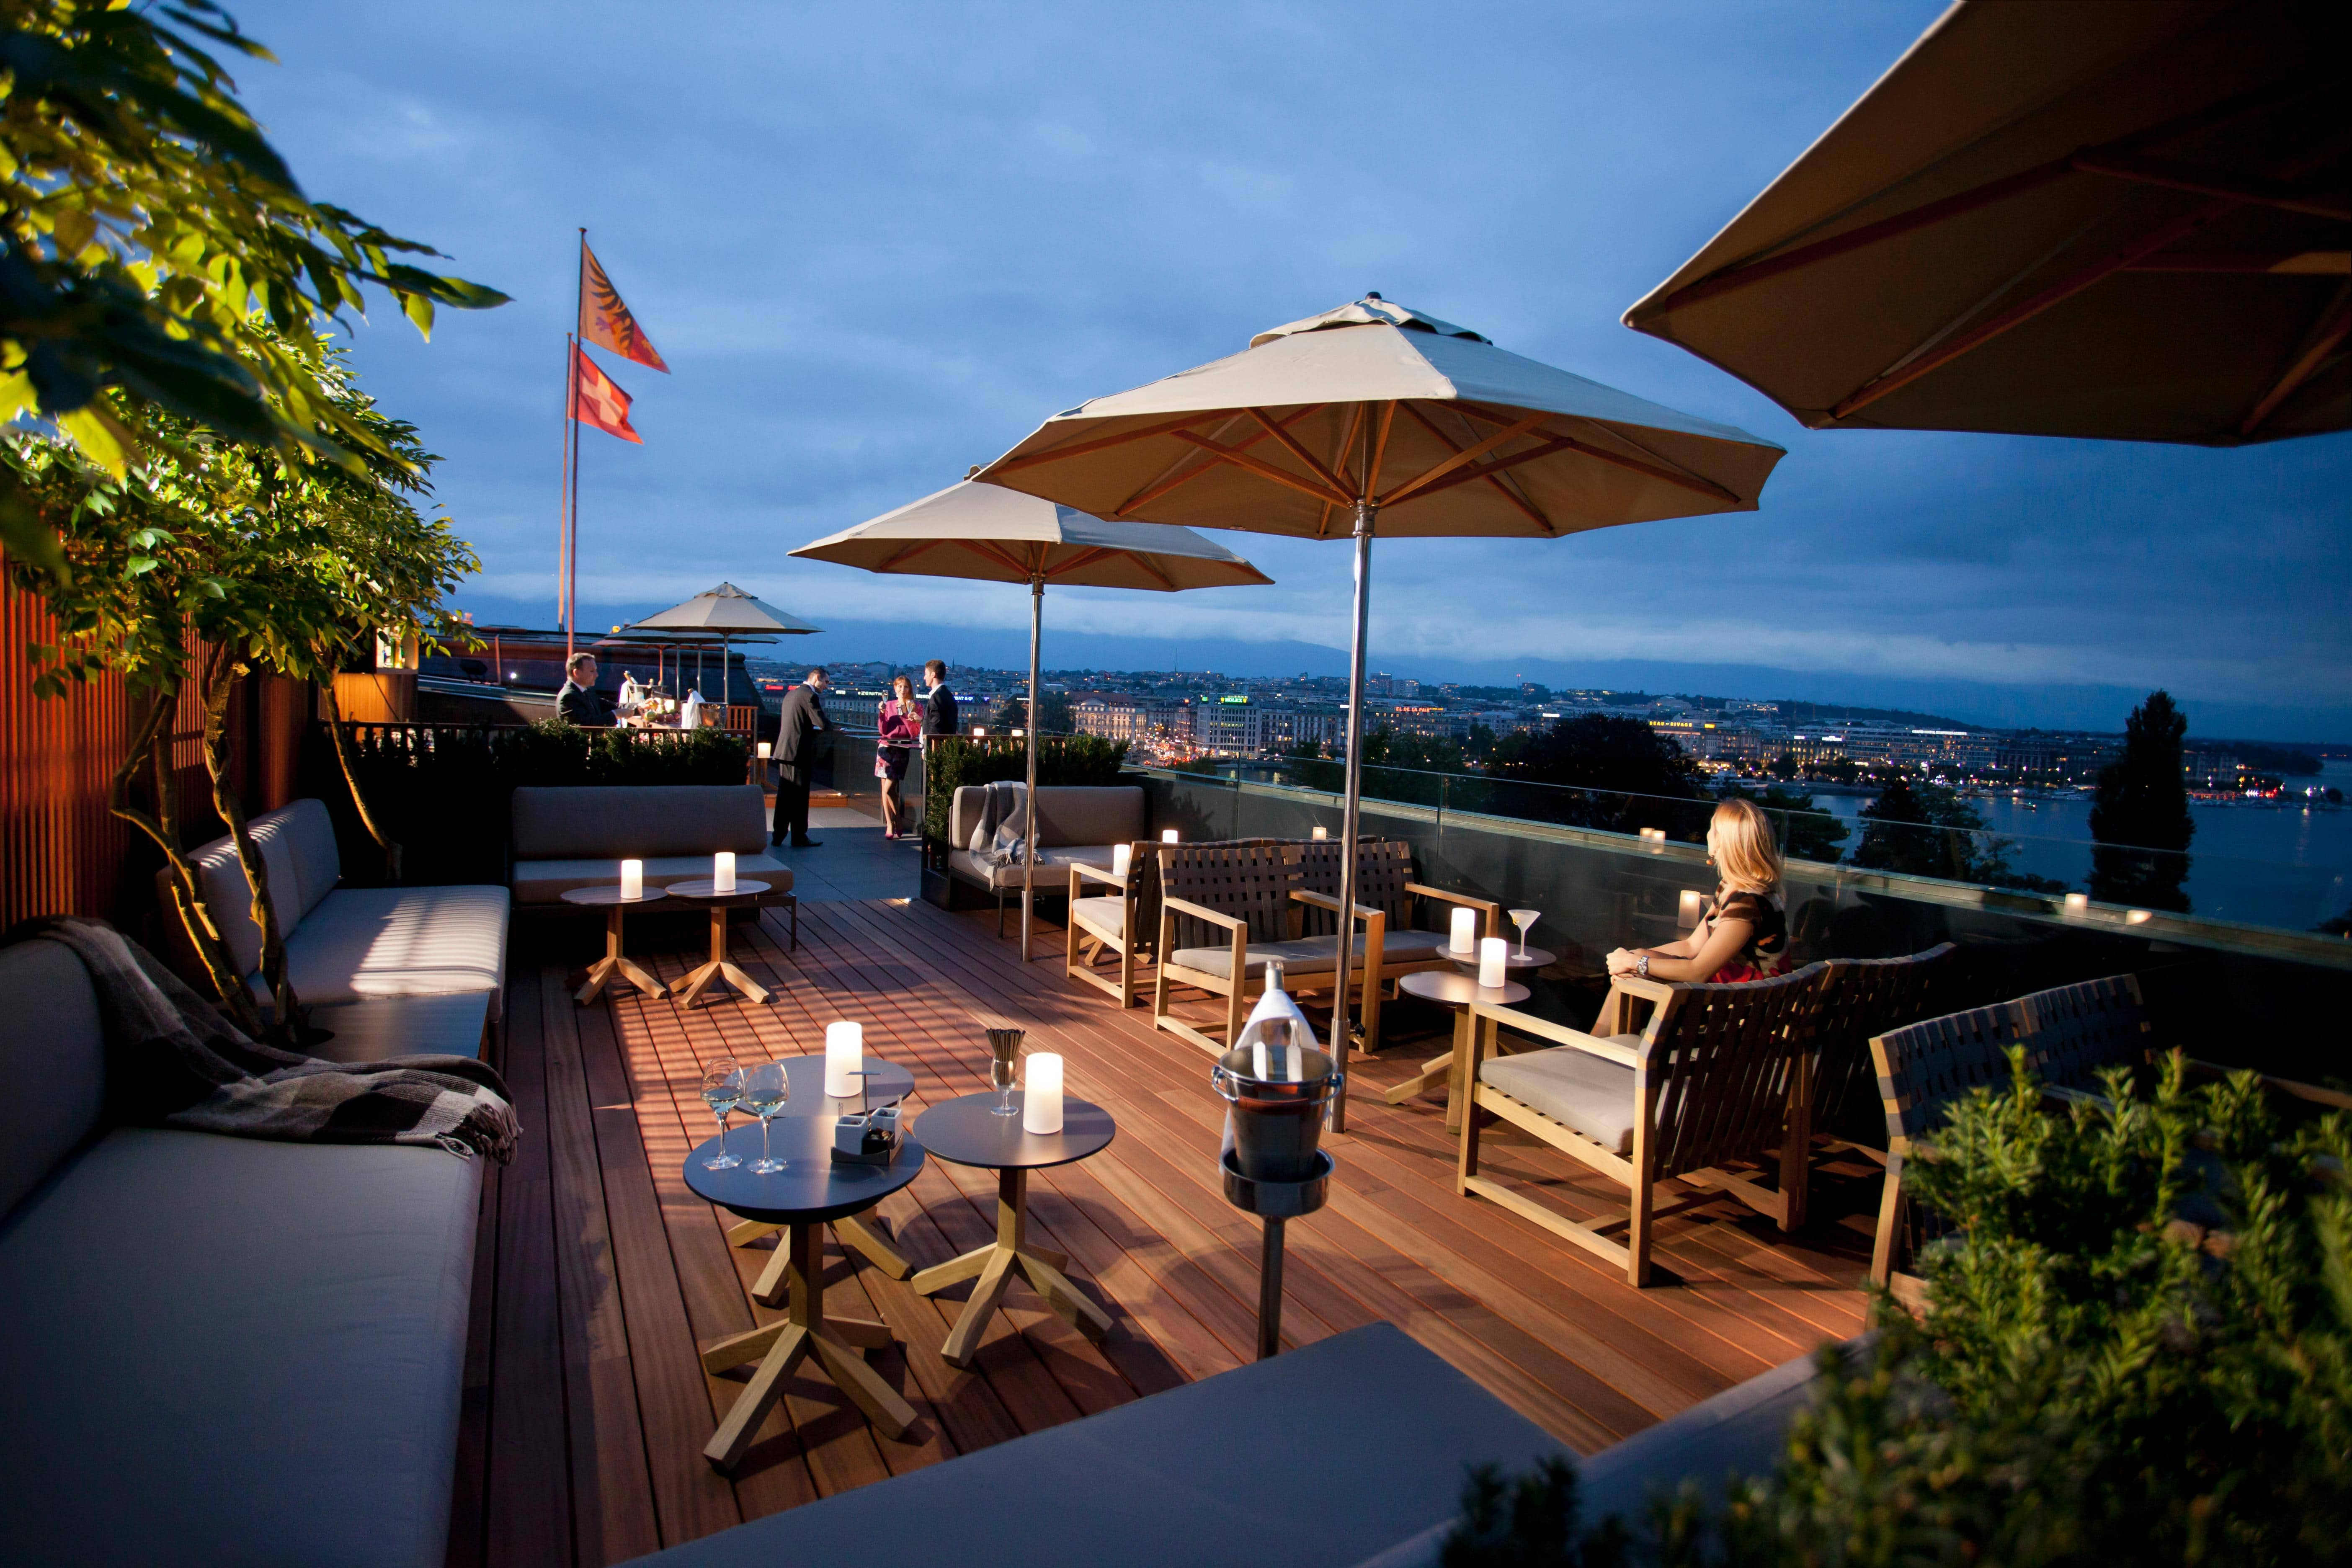 More Sky High Europe S Coolest Rooftop Bars Ebookers